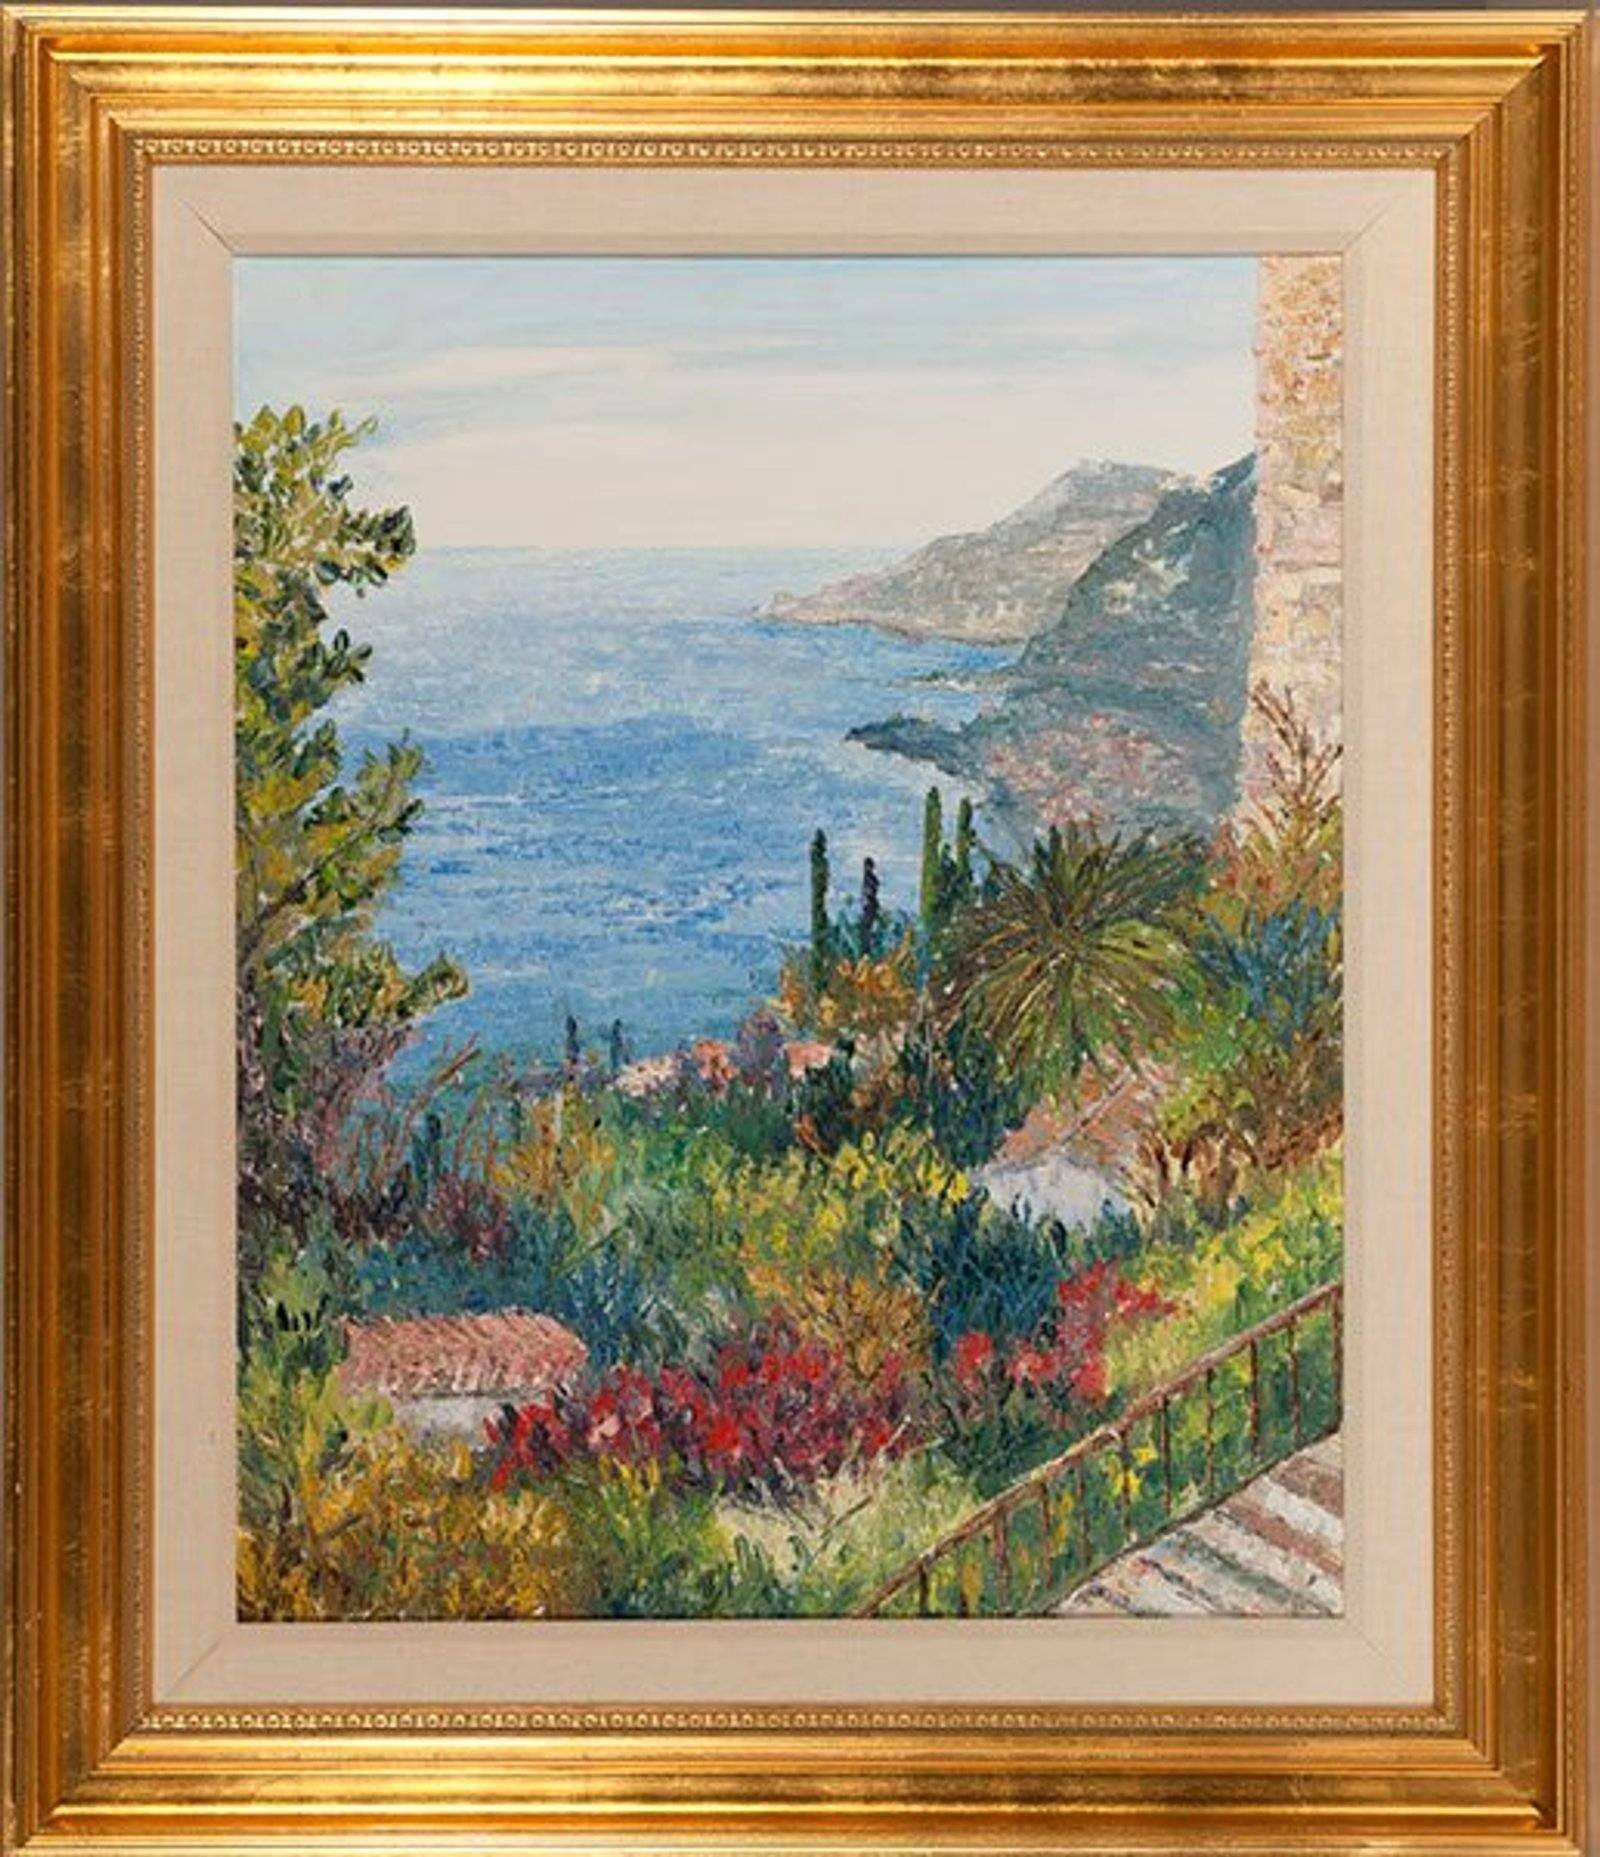 Free Painting Estimate Template or Tania forgione Vue Poetique Oil